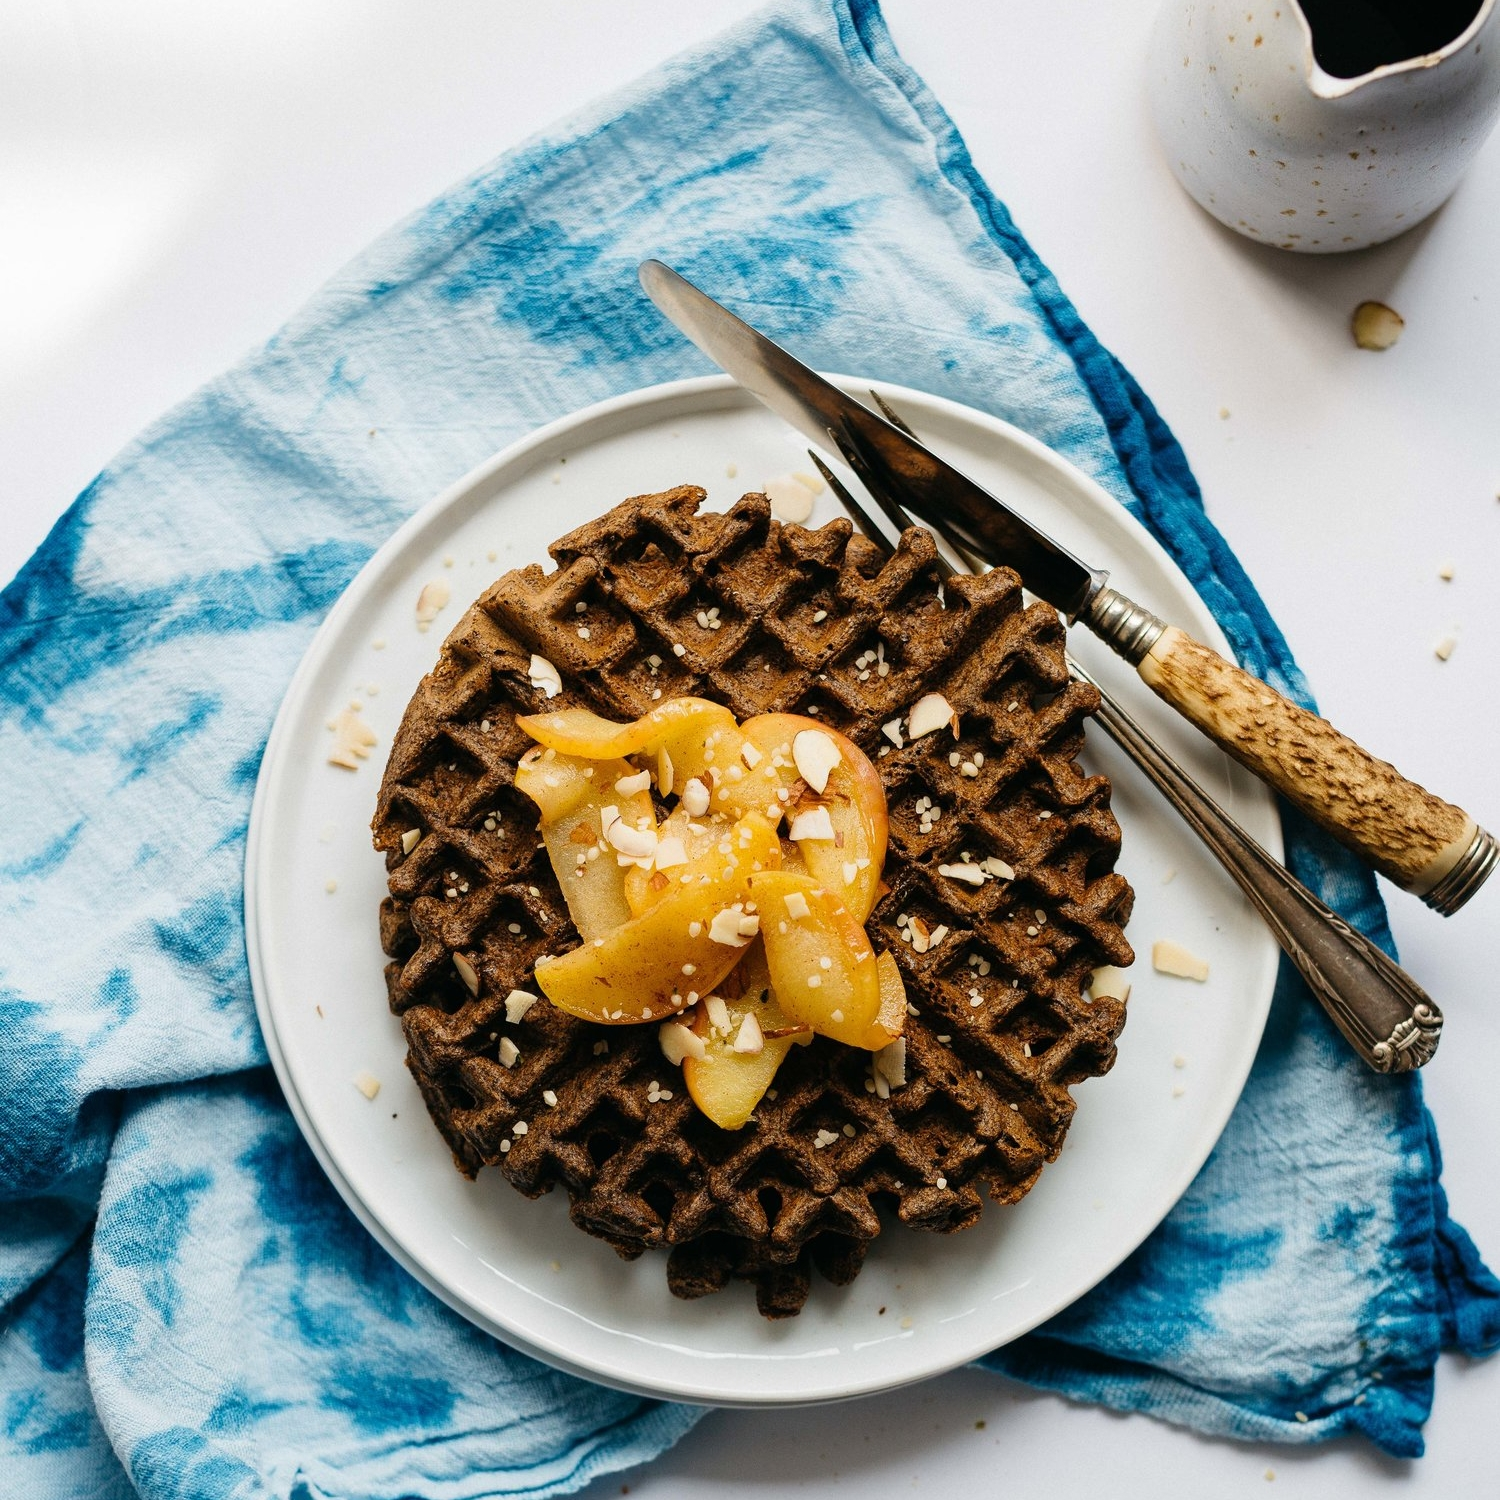 hemp-buckwheat blender waffles w/ spiced apples